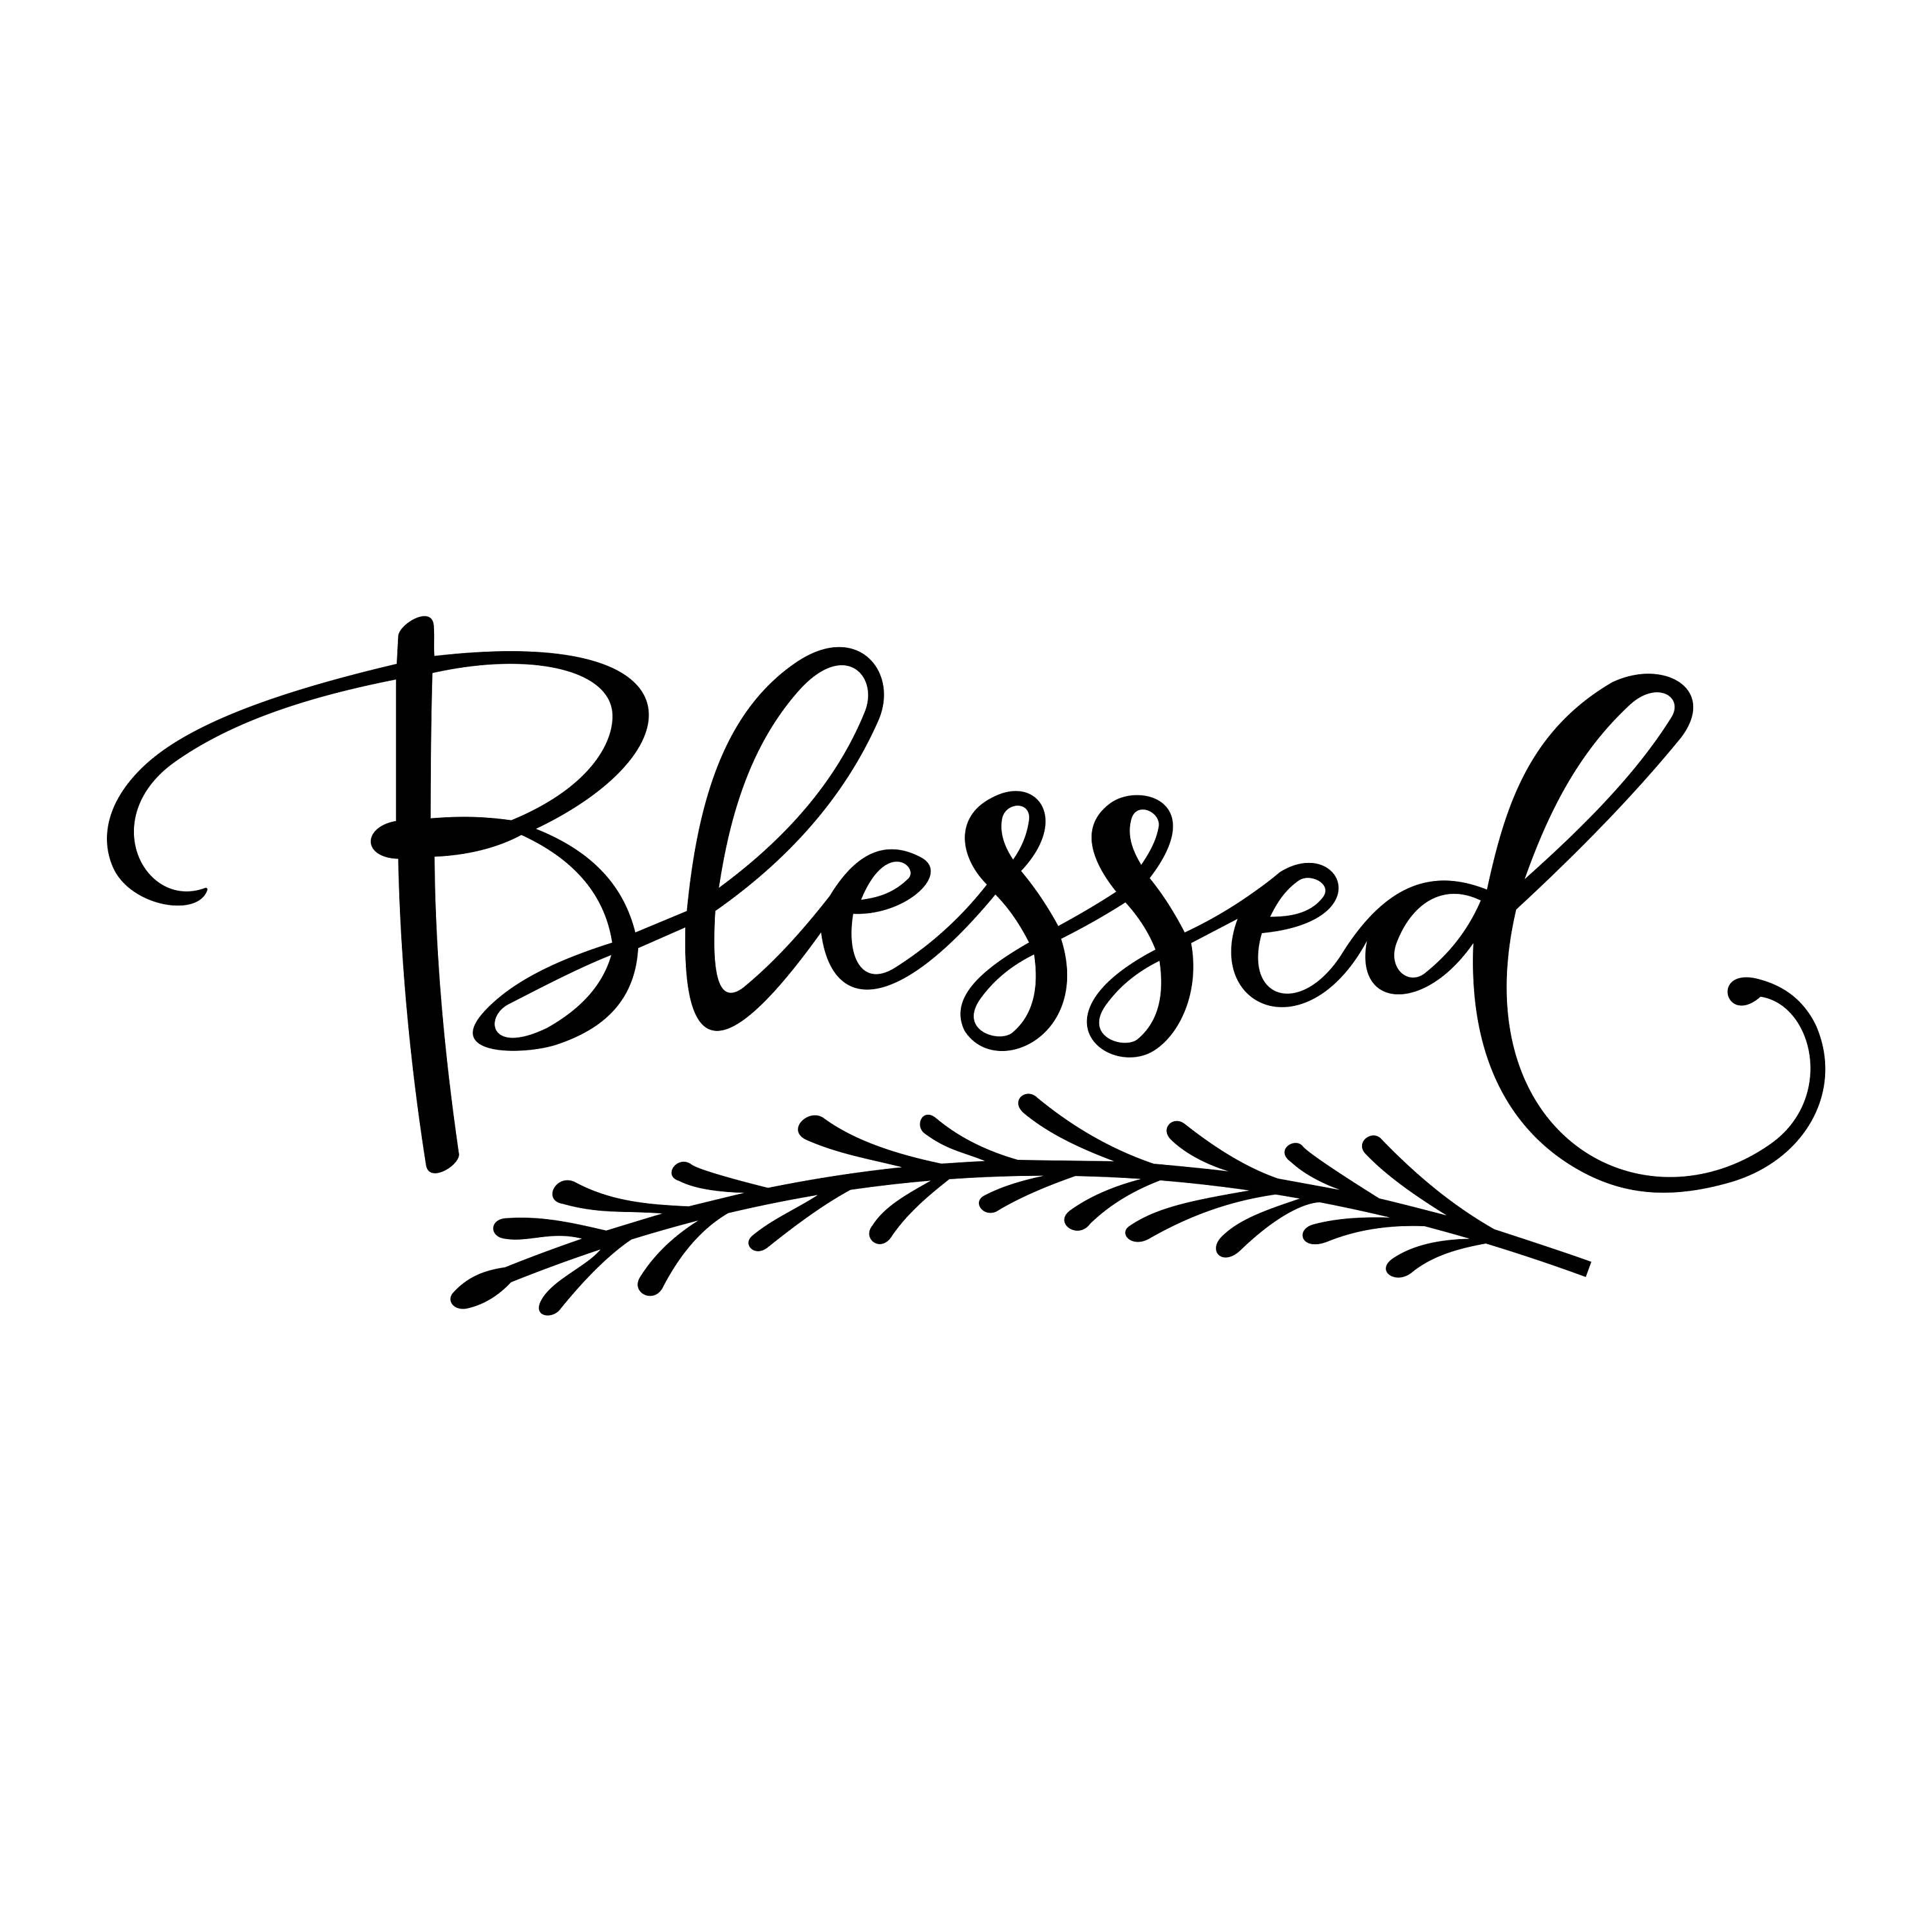 Blessed clipart clip free download Blessed clipart 1 » Clipart Station clip free download